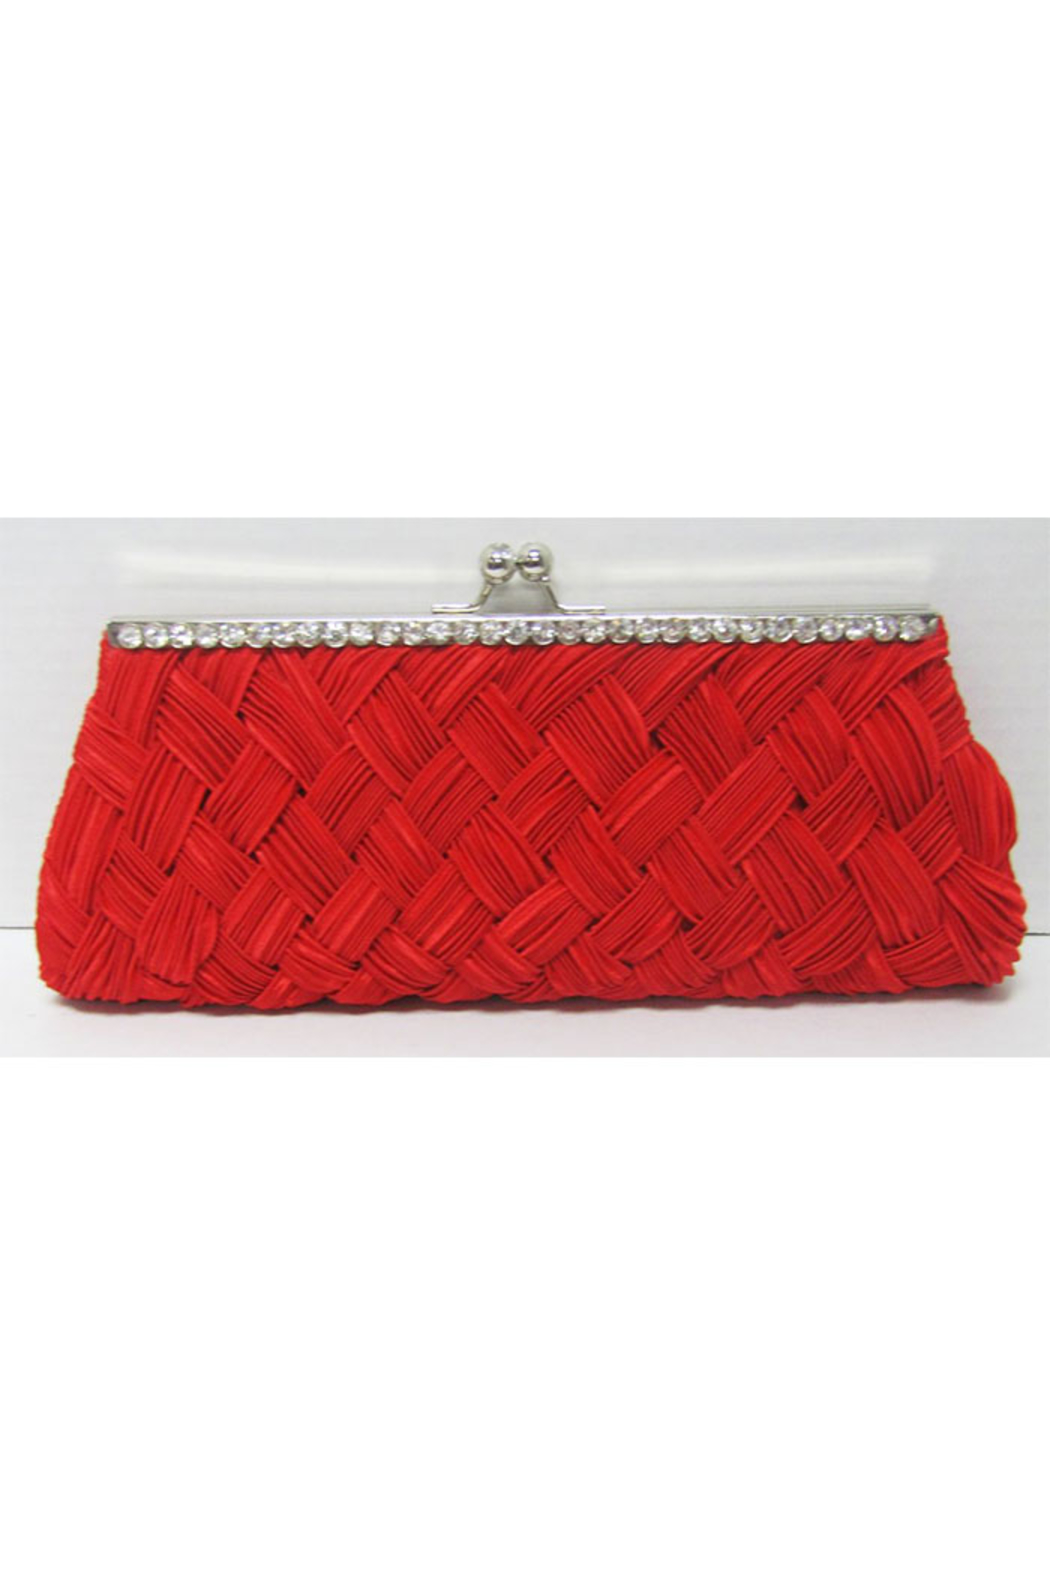 KIMBALS Ravishing Red Clutch Bag - Main Image